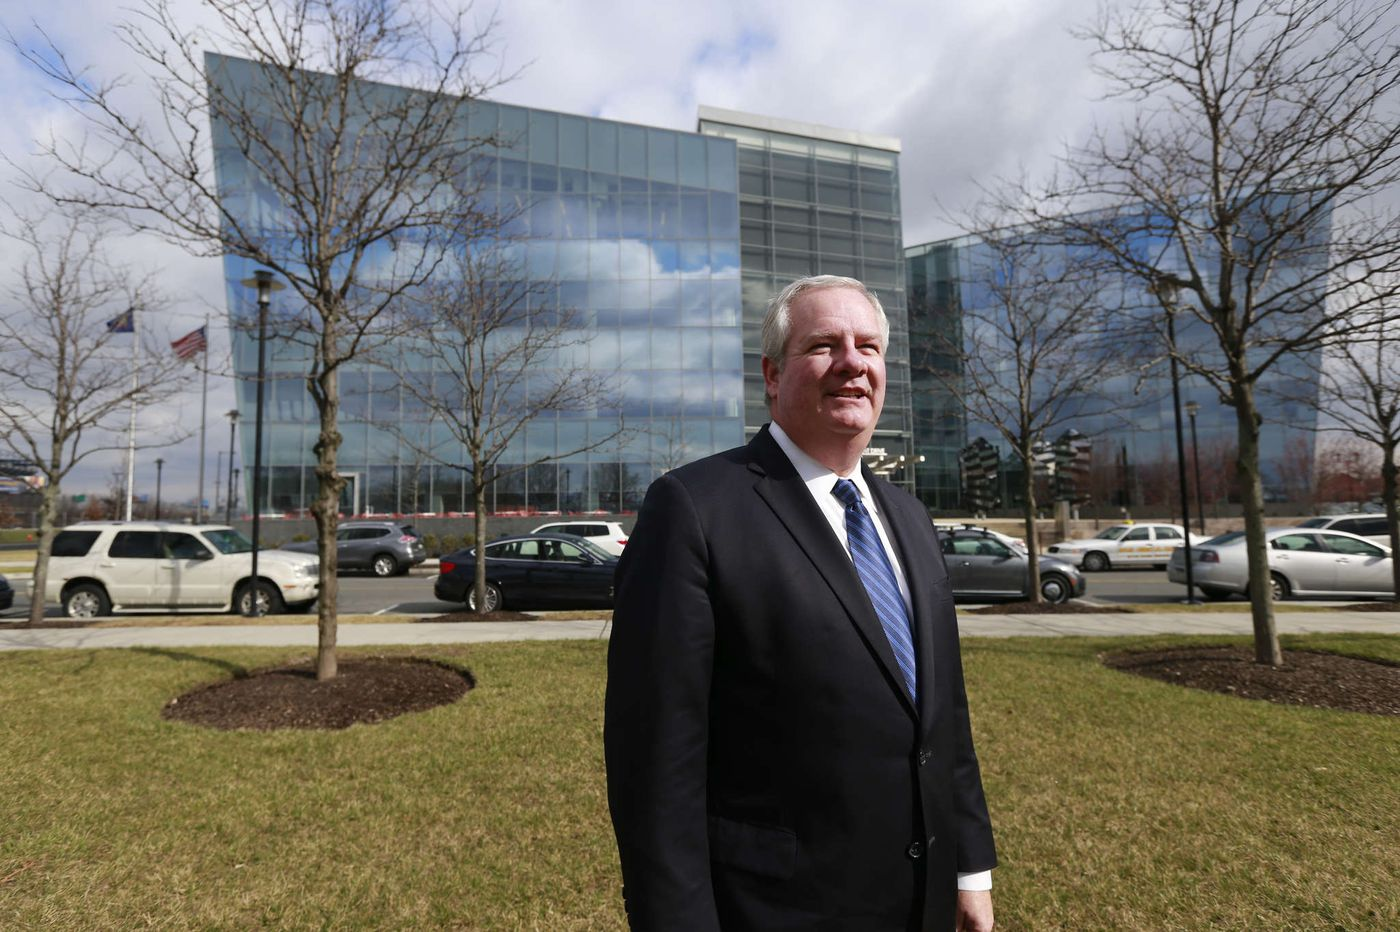 Philly industrial development chief John Grady stepping down to join uCity Square developer